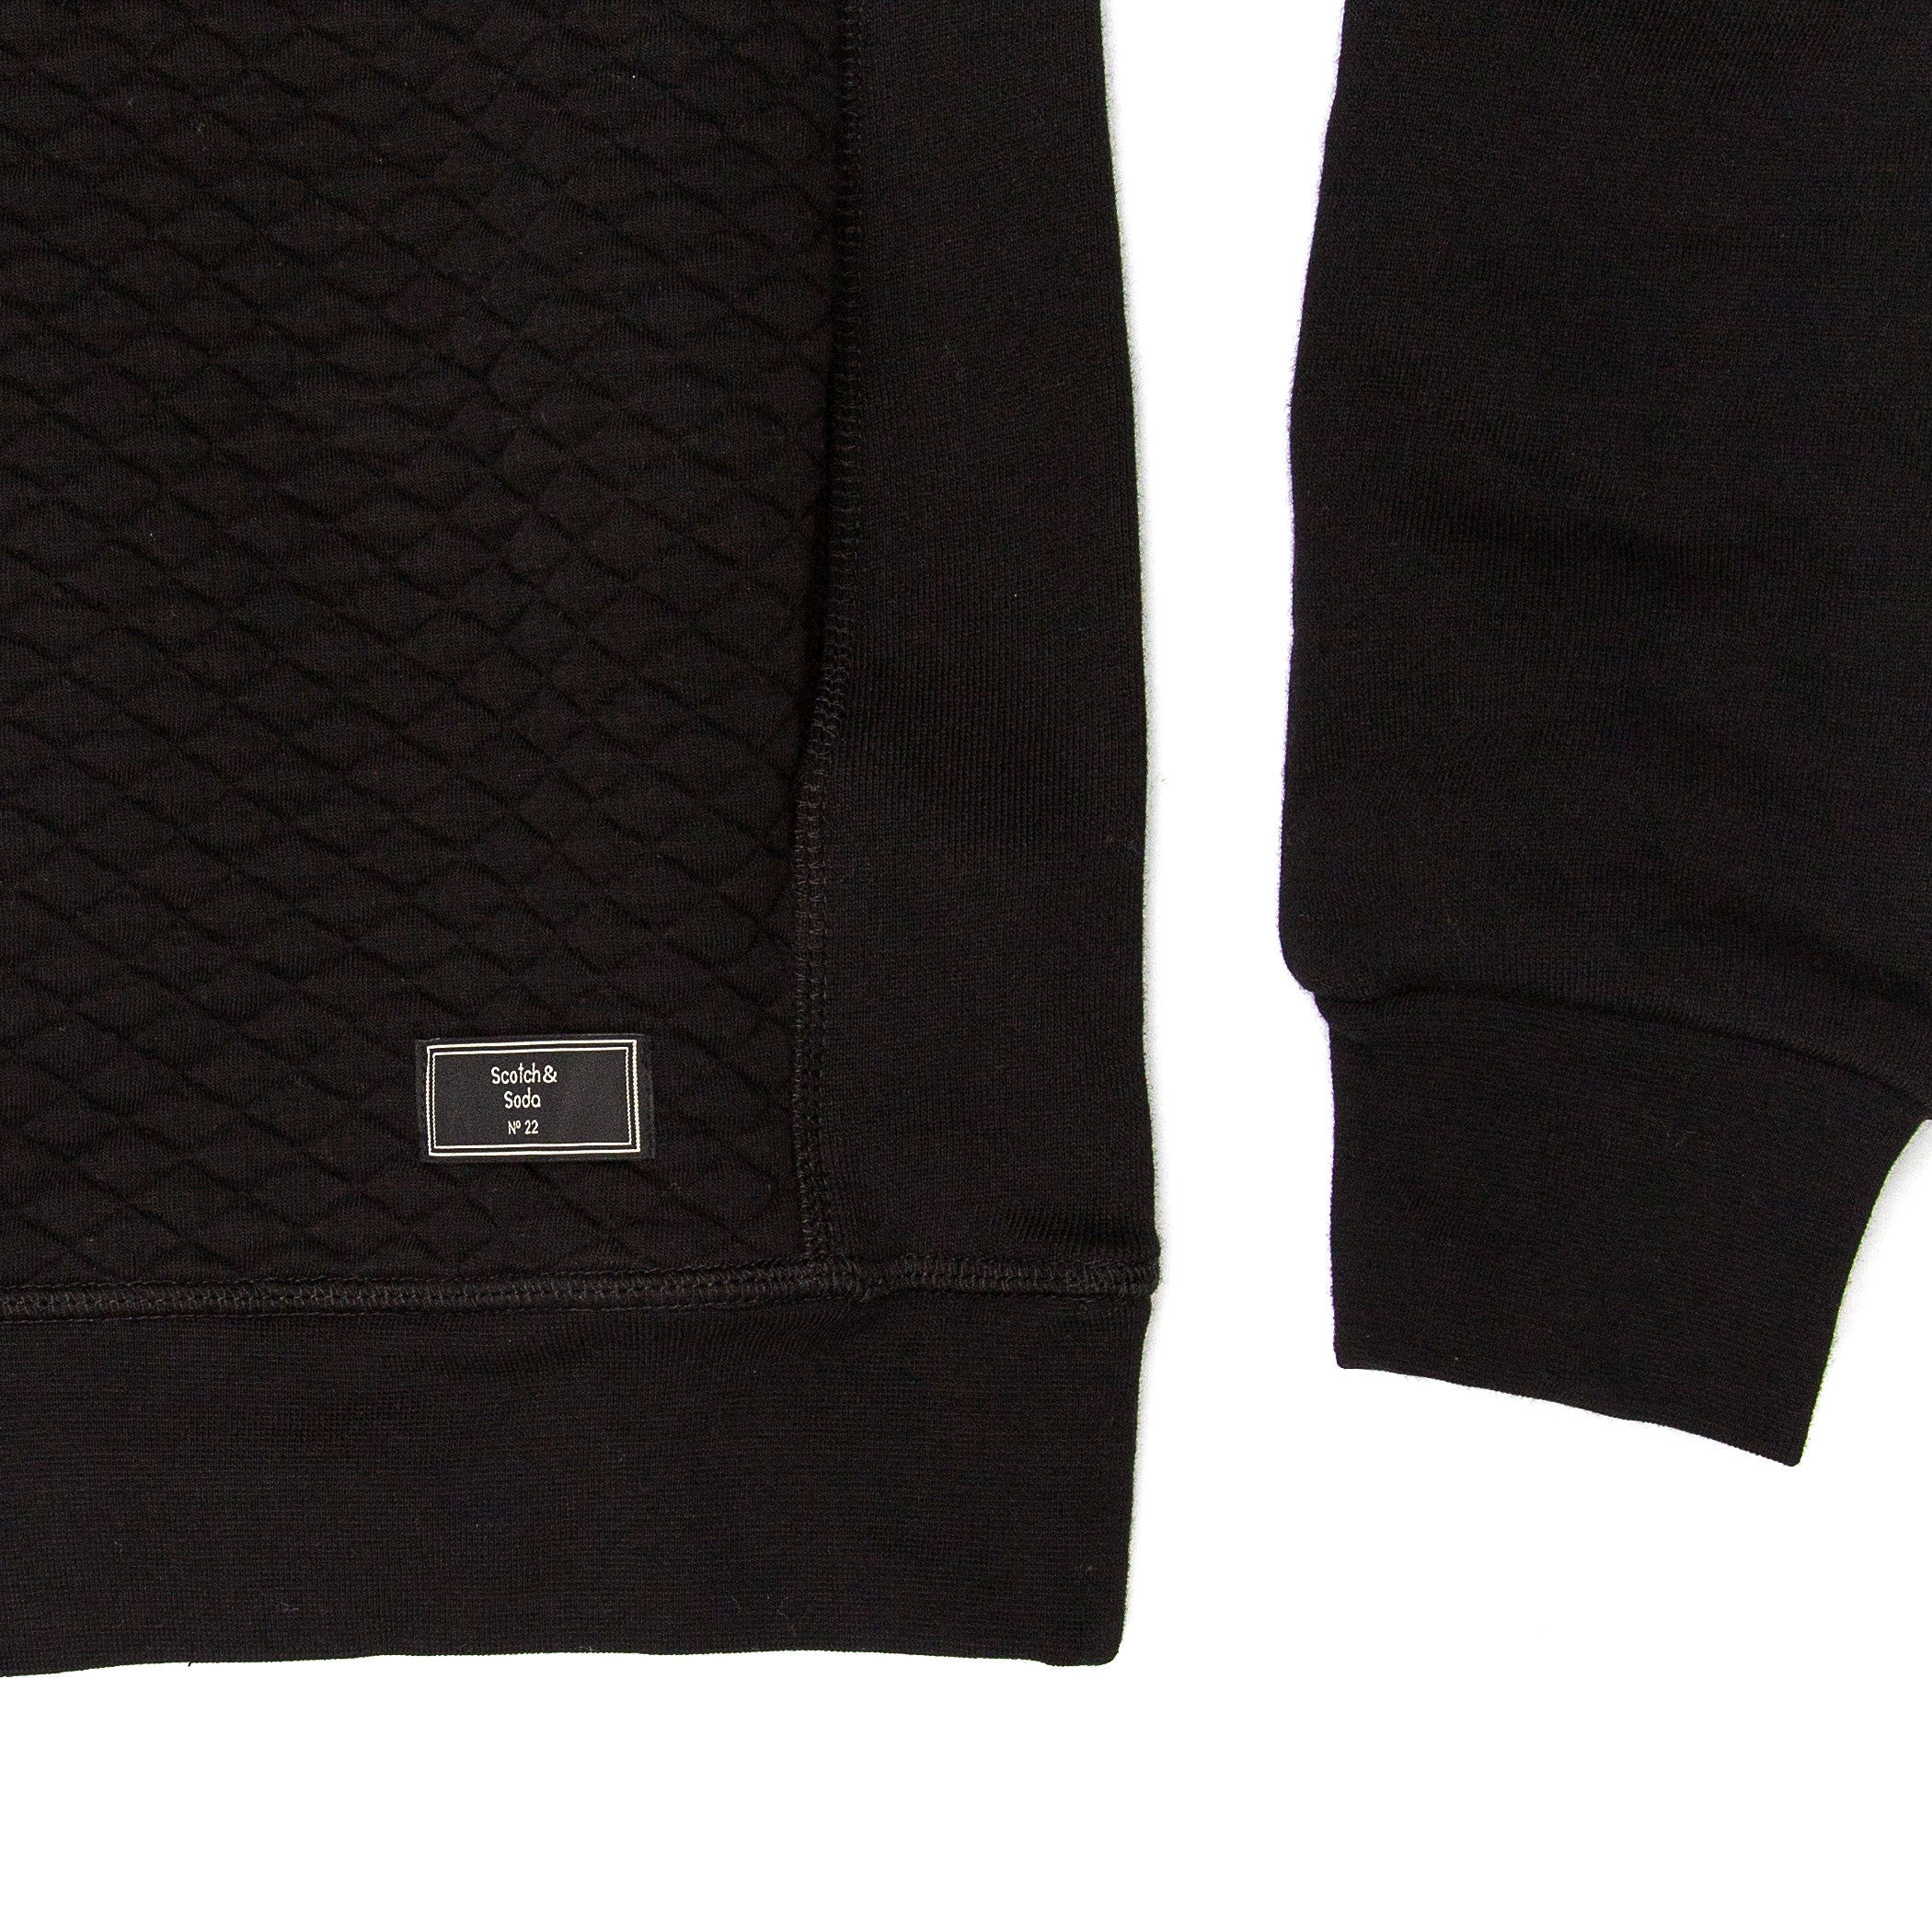 Scotch & Soda - Interlock Crewneck